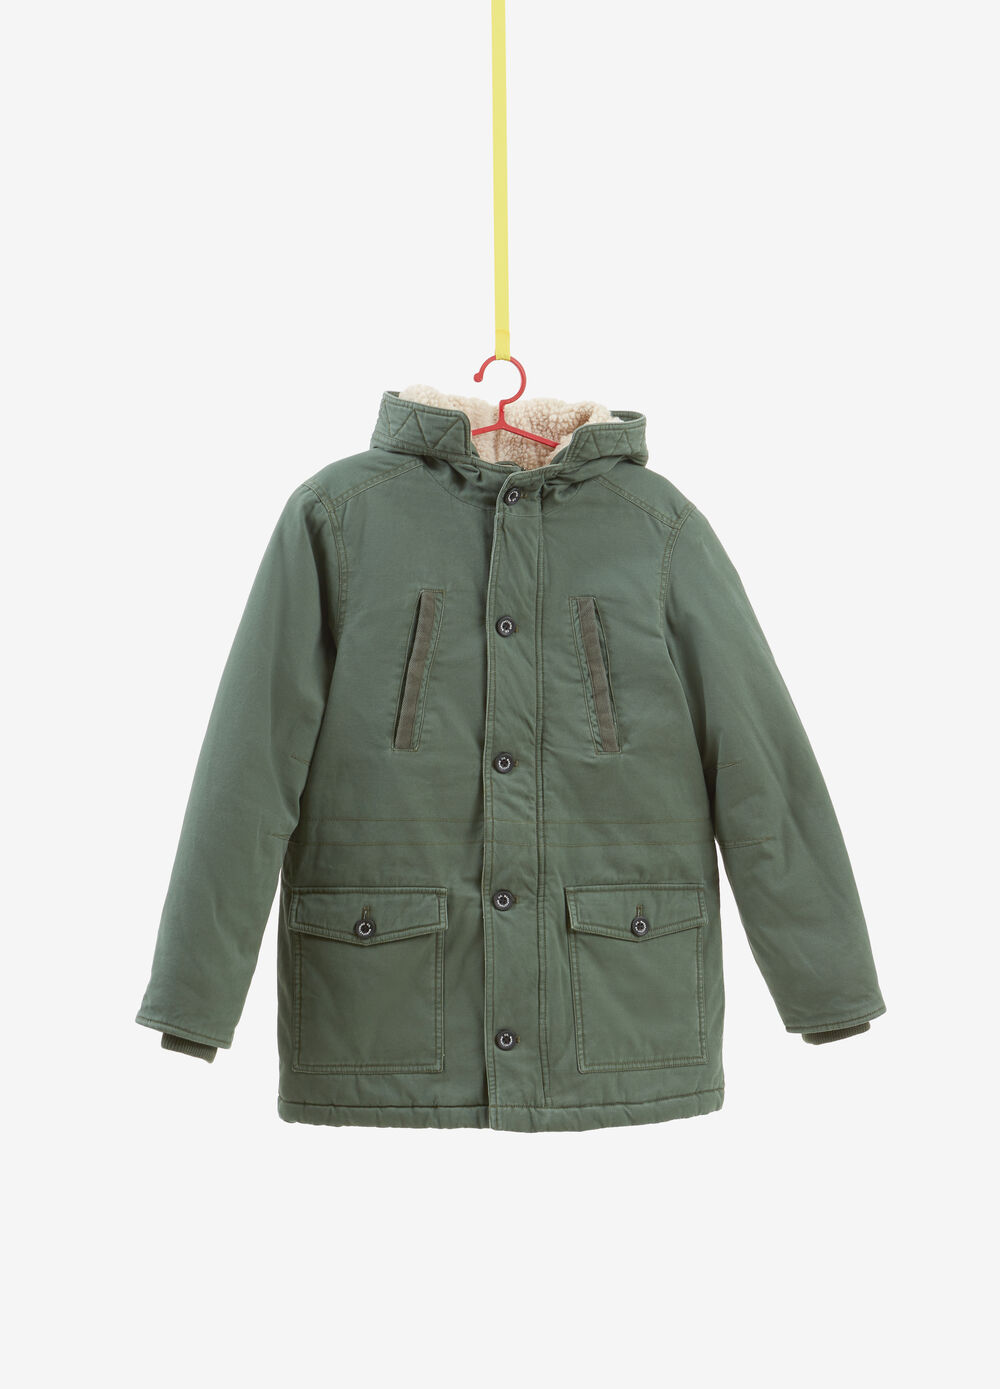 100% cotton parka with hood and buttons